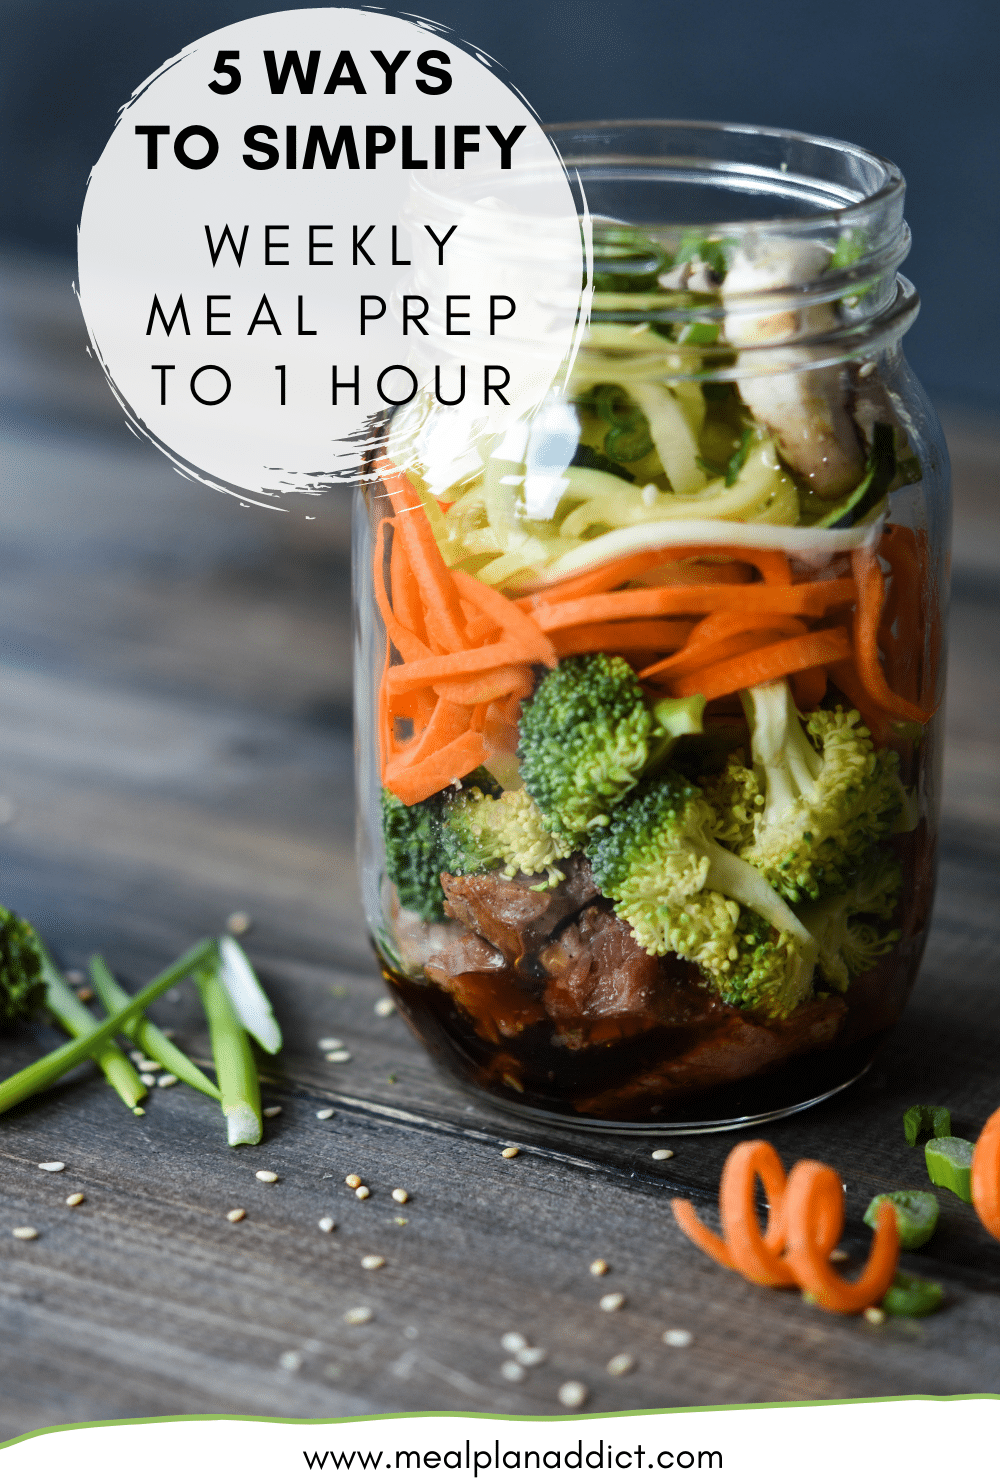 5 Ways to Simplify Weekly Meal Prep to 1 Hour